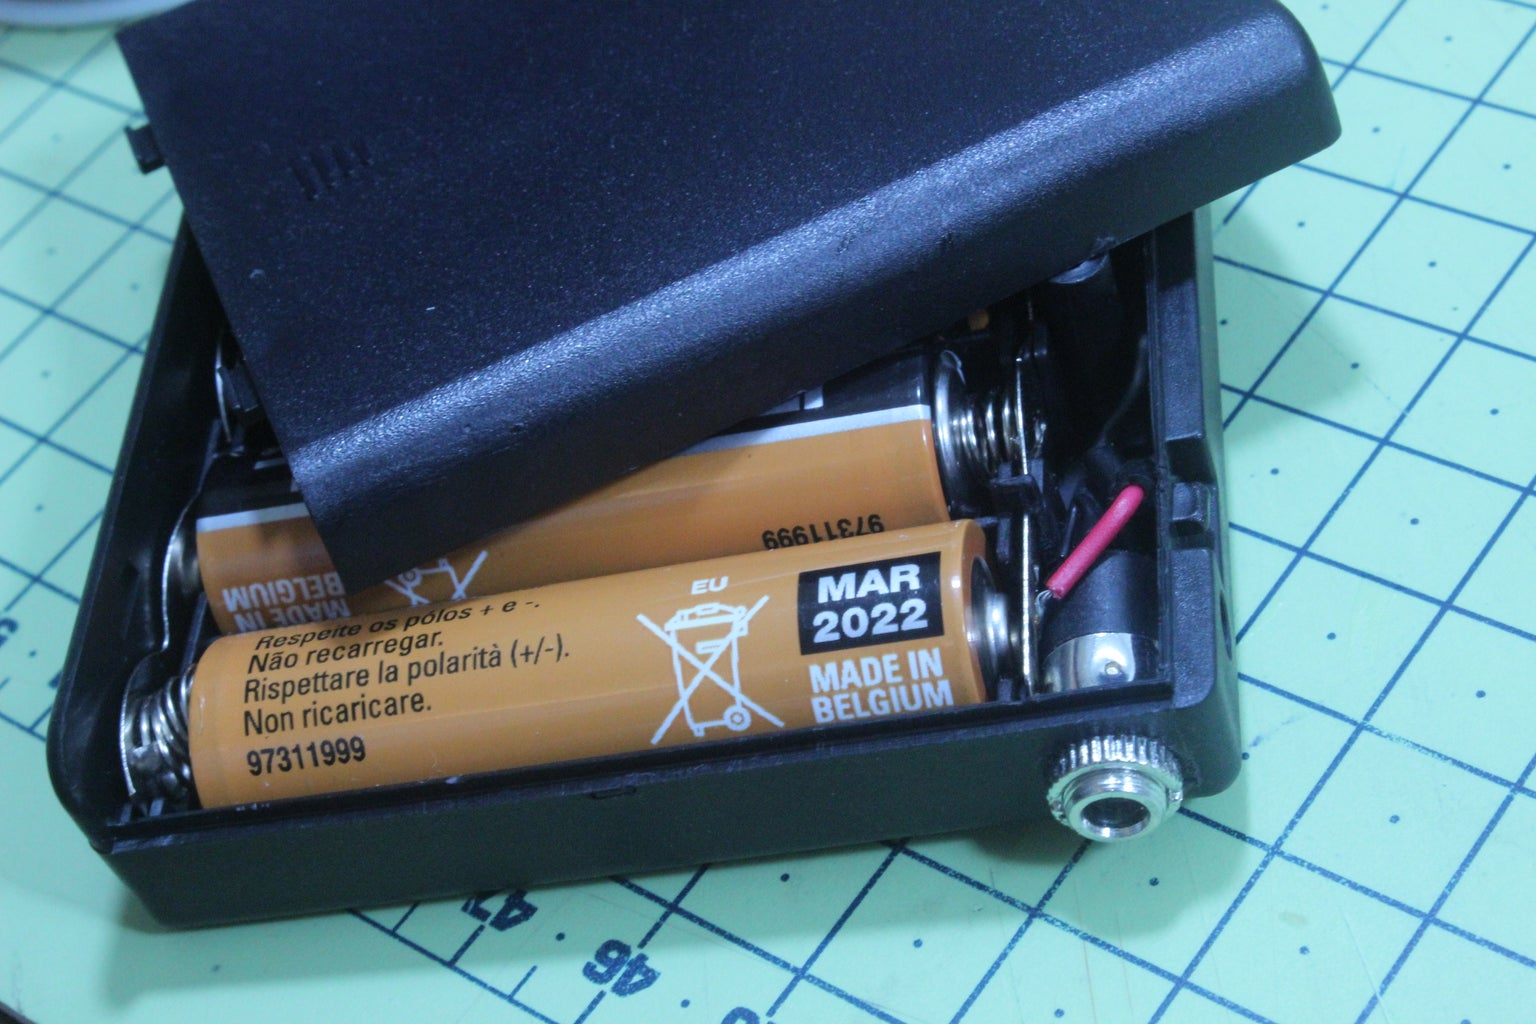 SECTION E: Power-Up (Battery or Mains Power Adapter)